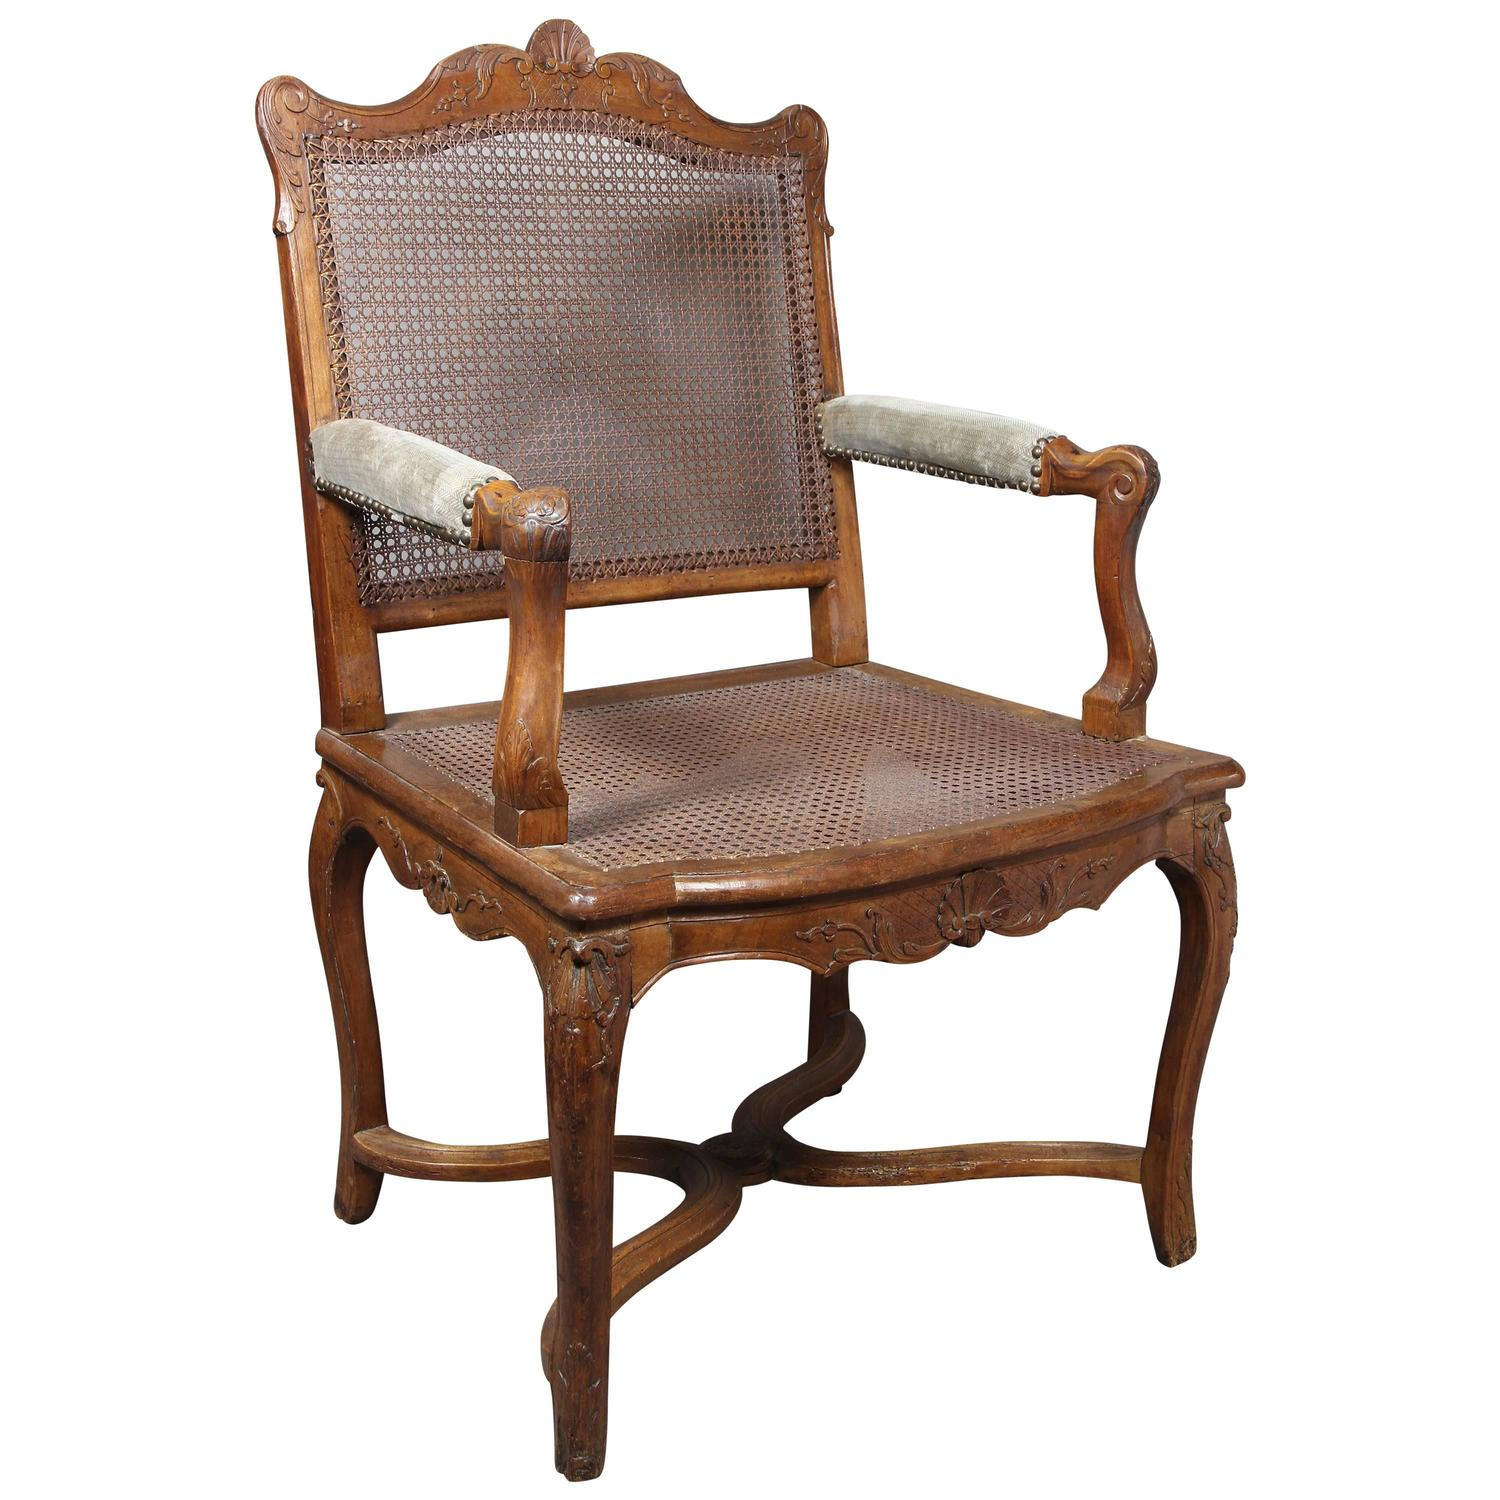 regence walnut and caned fauteuil armchair for sale at. Black Bedroom Furniture Sets. Home Design Ideas